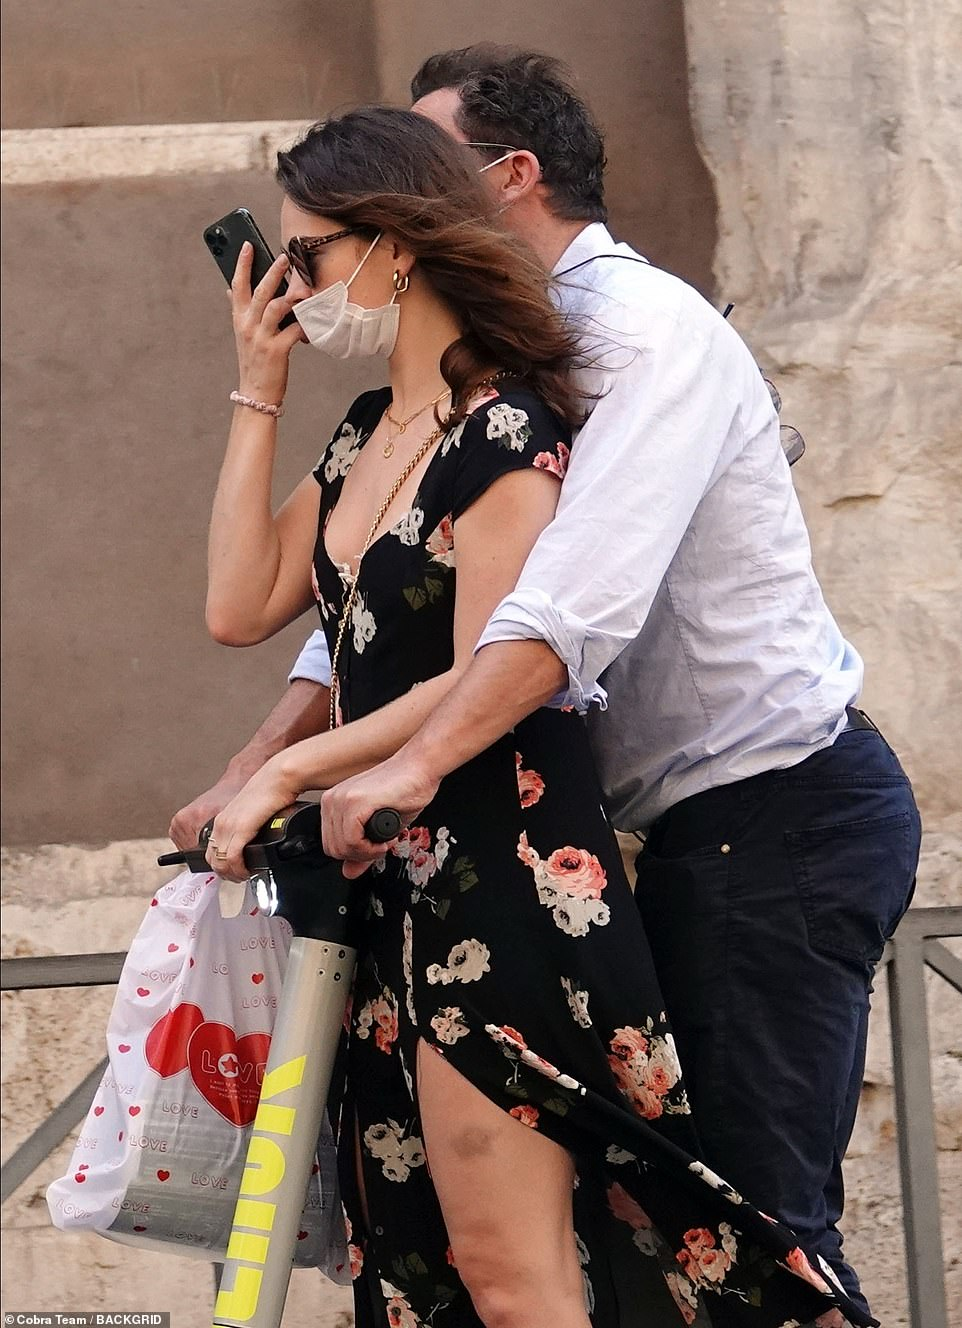 PICTURE EXCLUSIVE: Lily James, 31, and married The Affair star Dominic West, 50, were pictured passionately kissing and cuddling as they shared scooter ride during a romantic weekend in Rome on Sunday